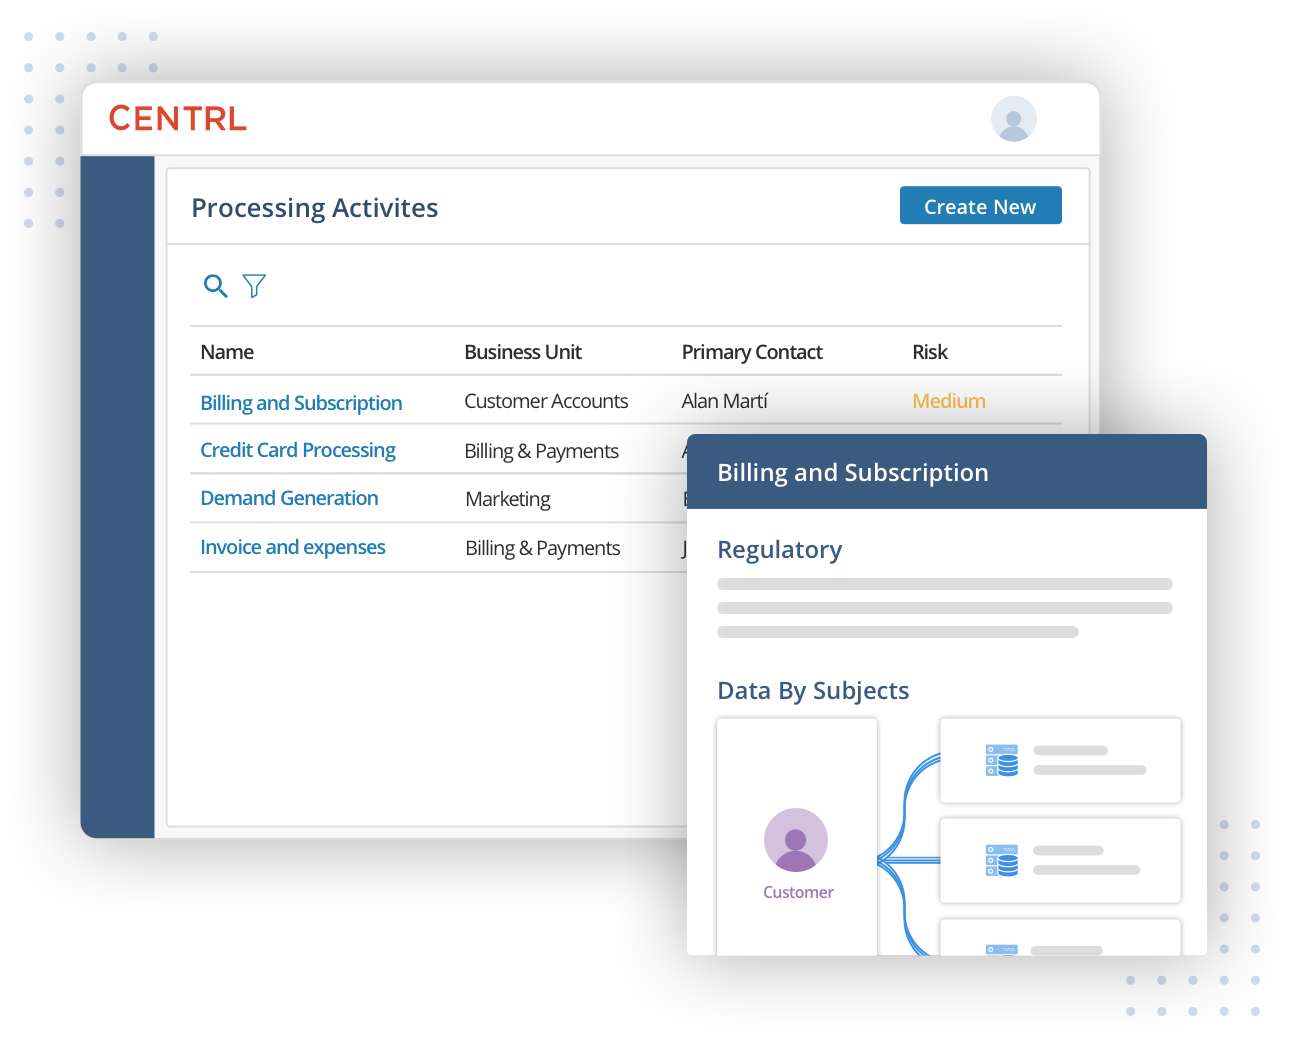 Generate real-time, up-to-date records of processing activities and more for compliance reporting